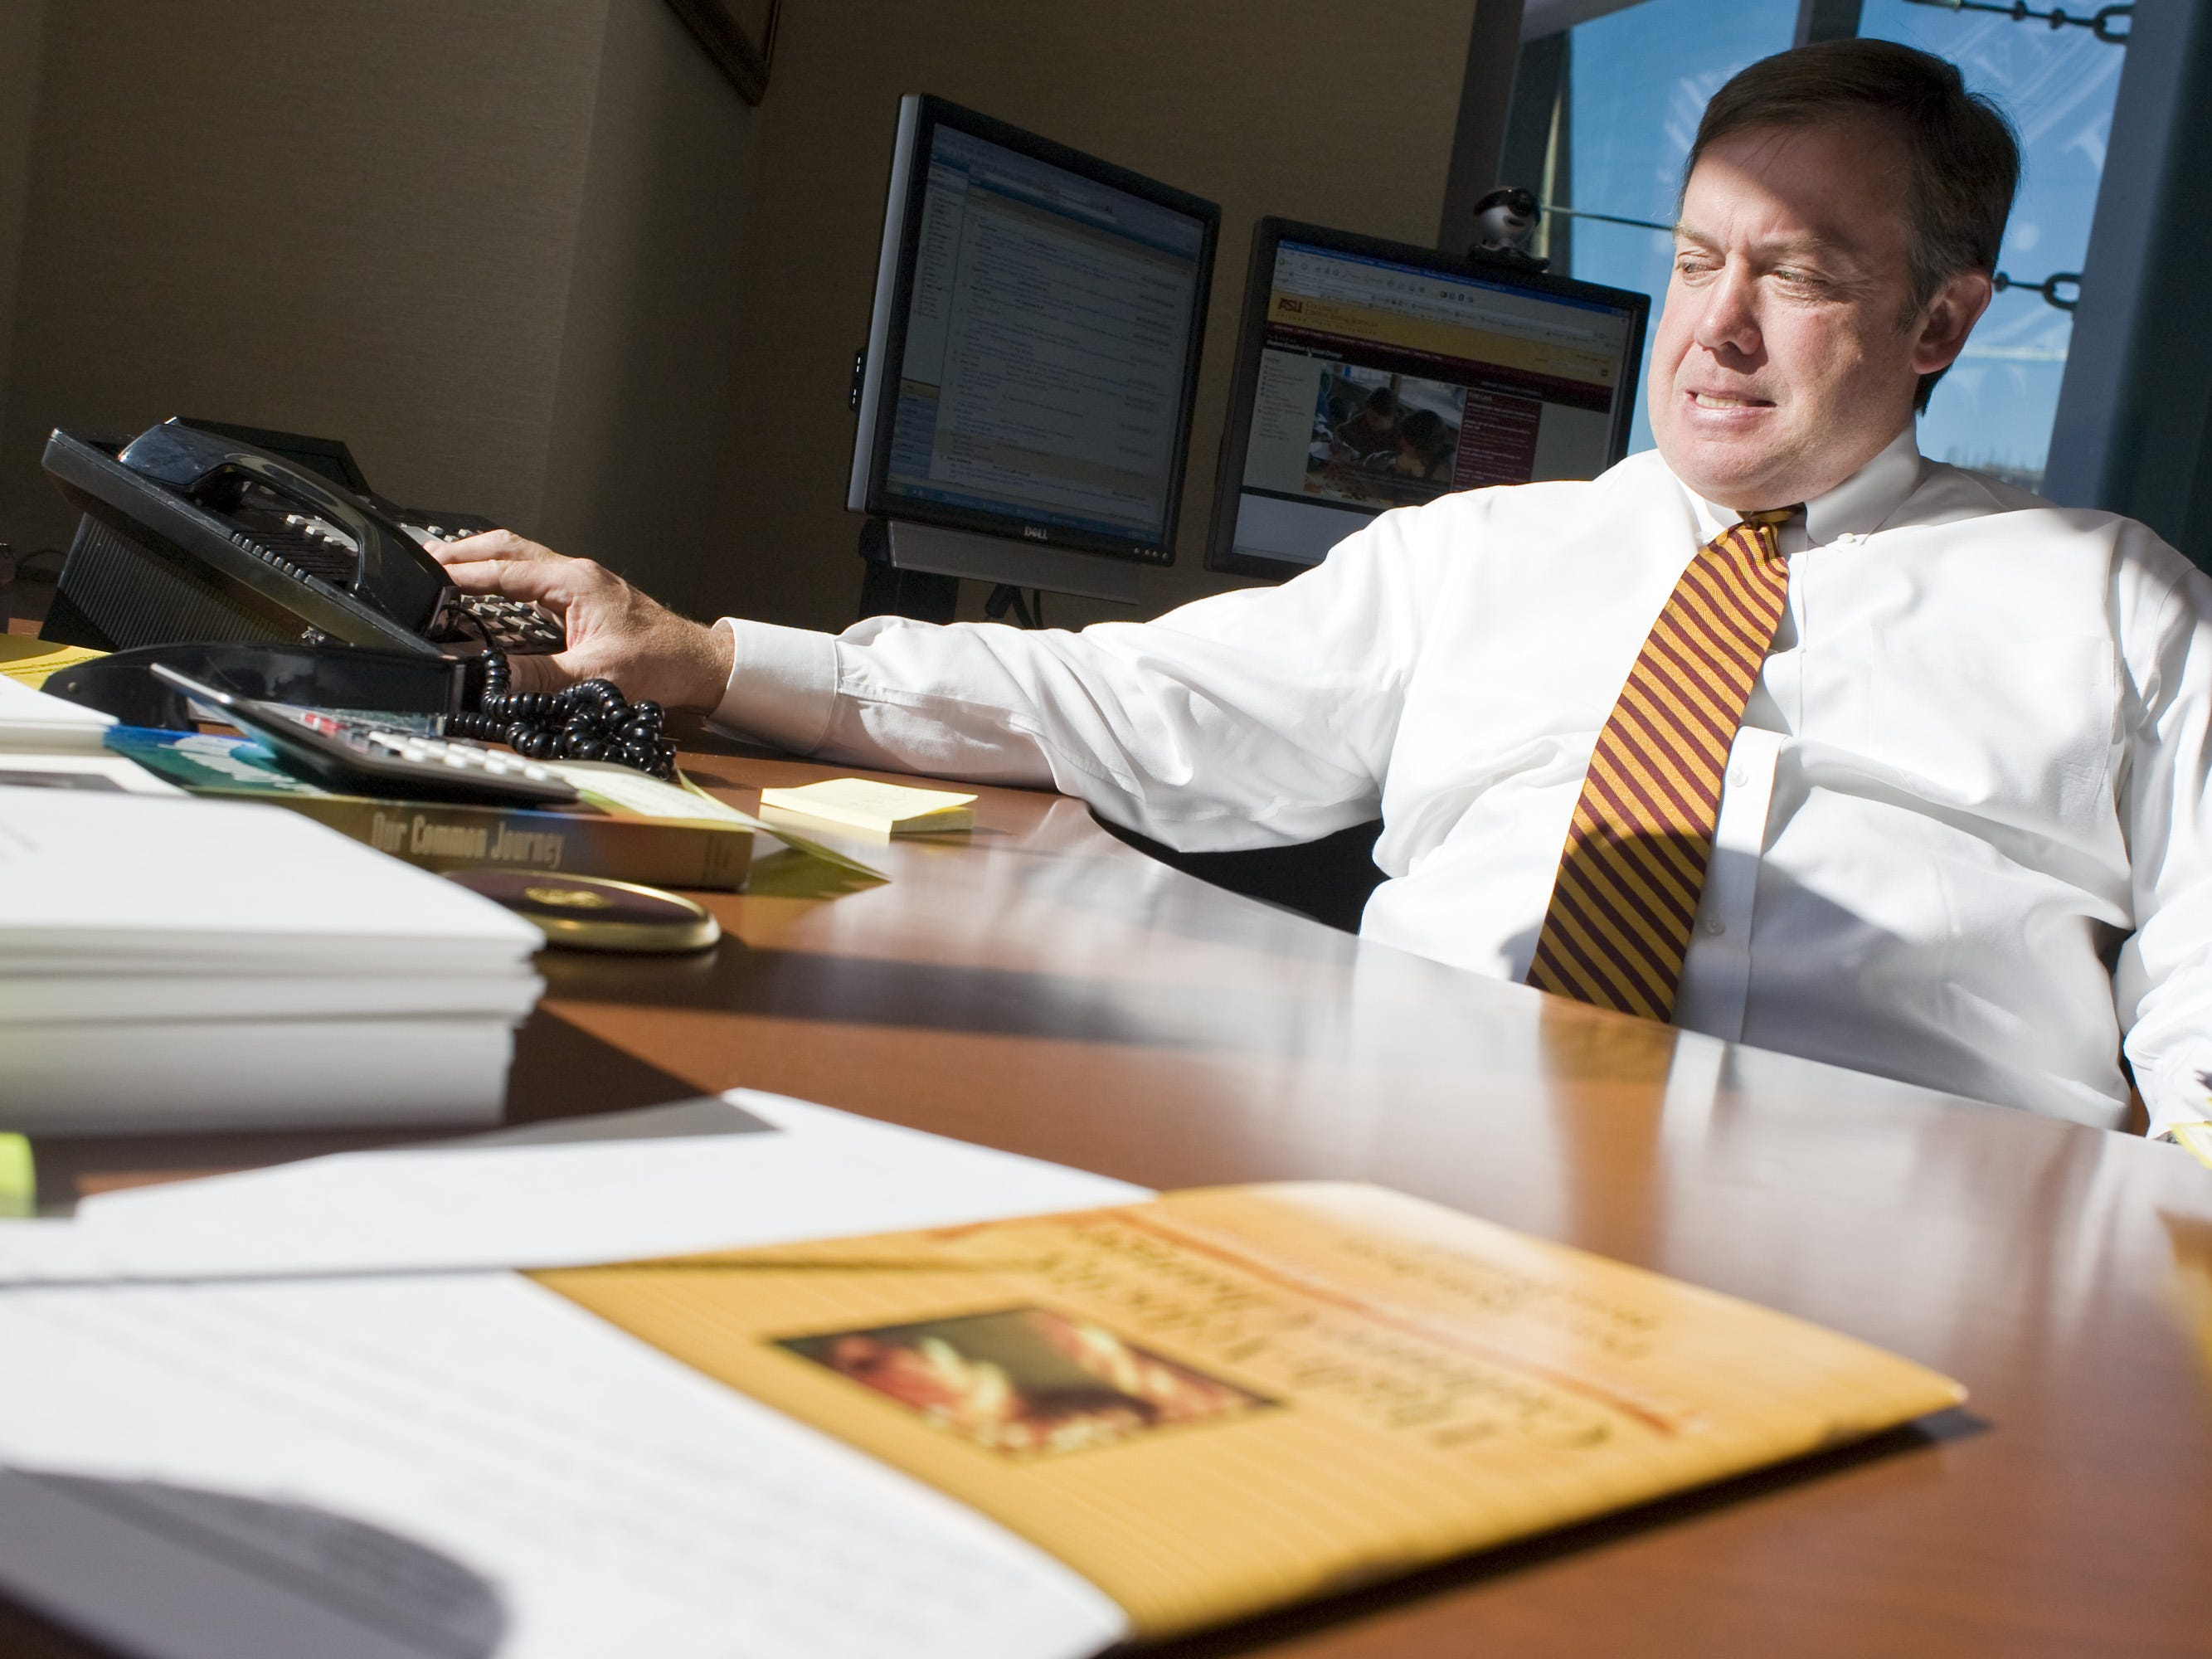 ASU President Michael Crow takes a conference call in his office in 2007.